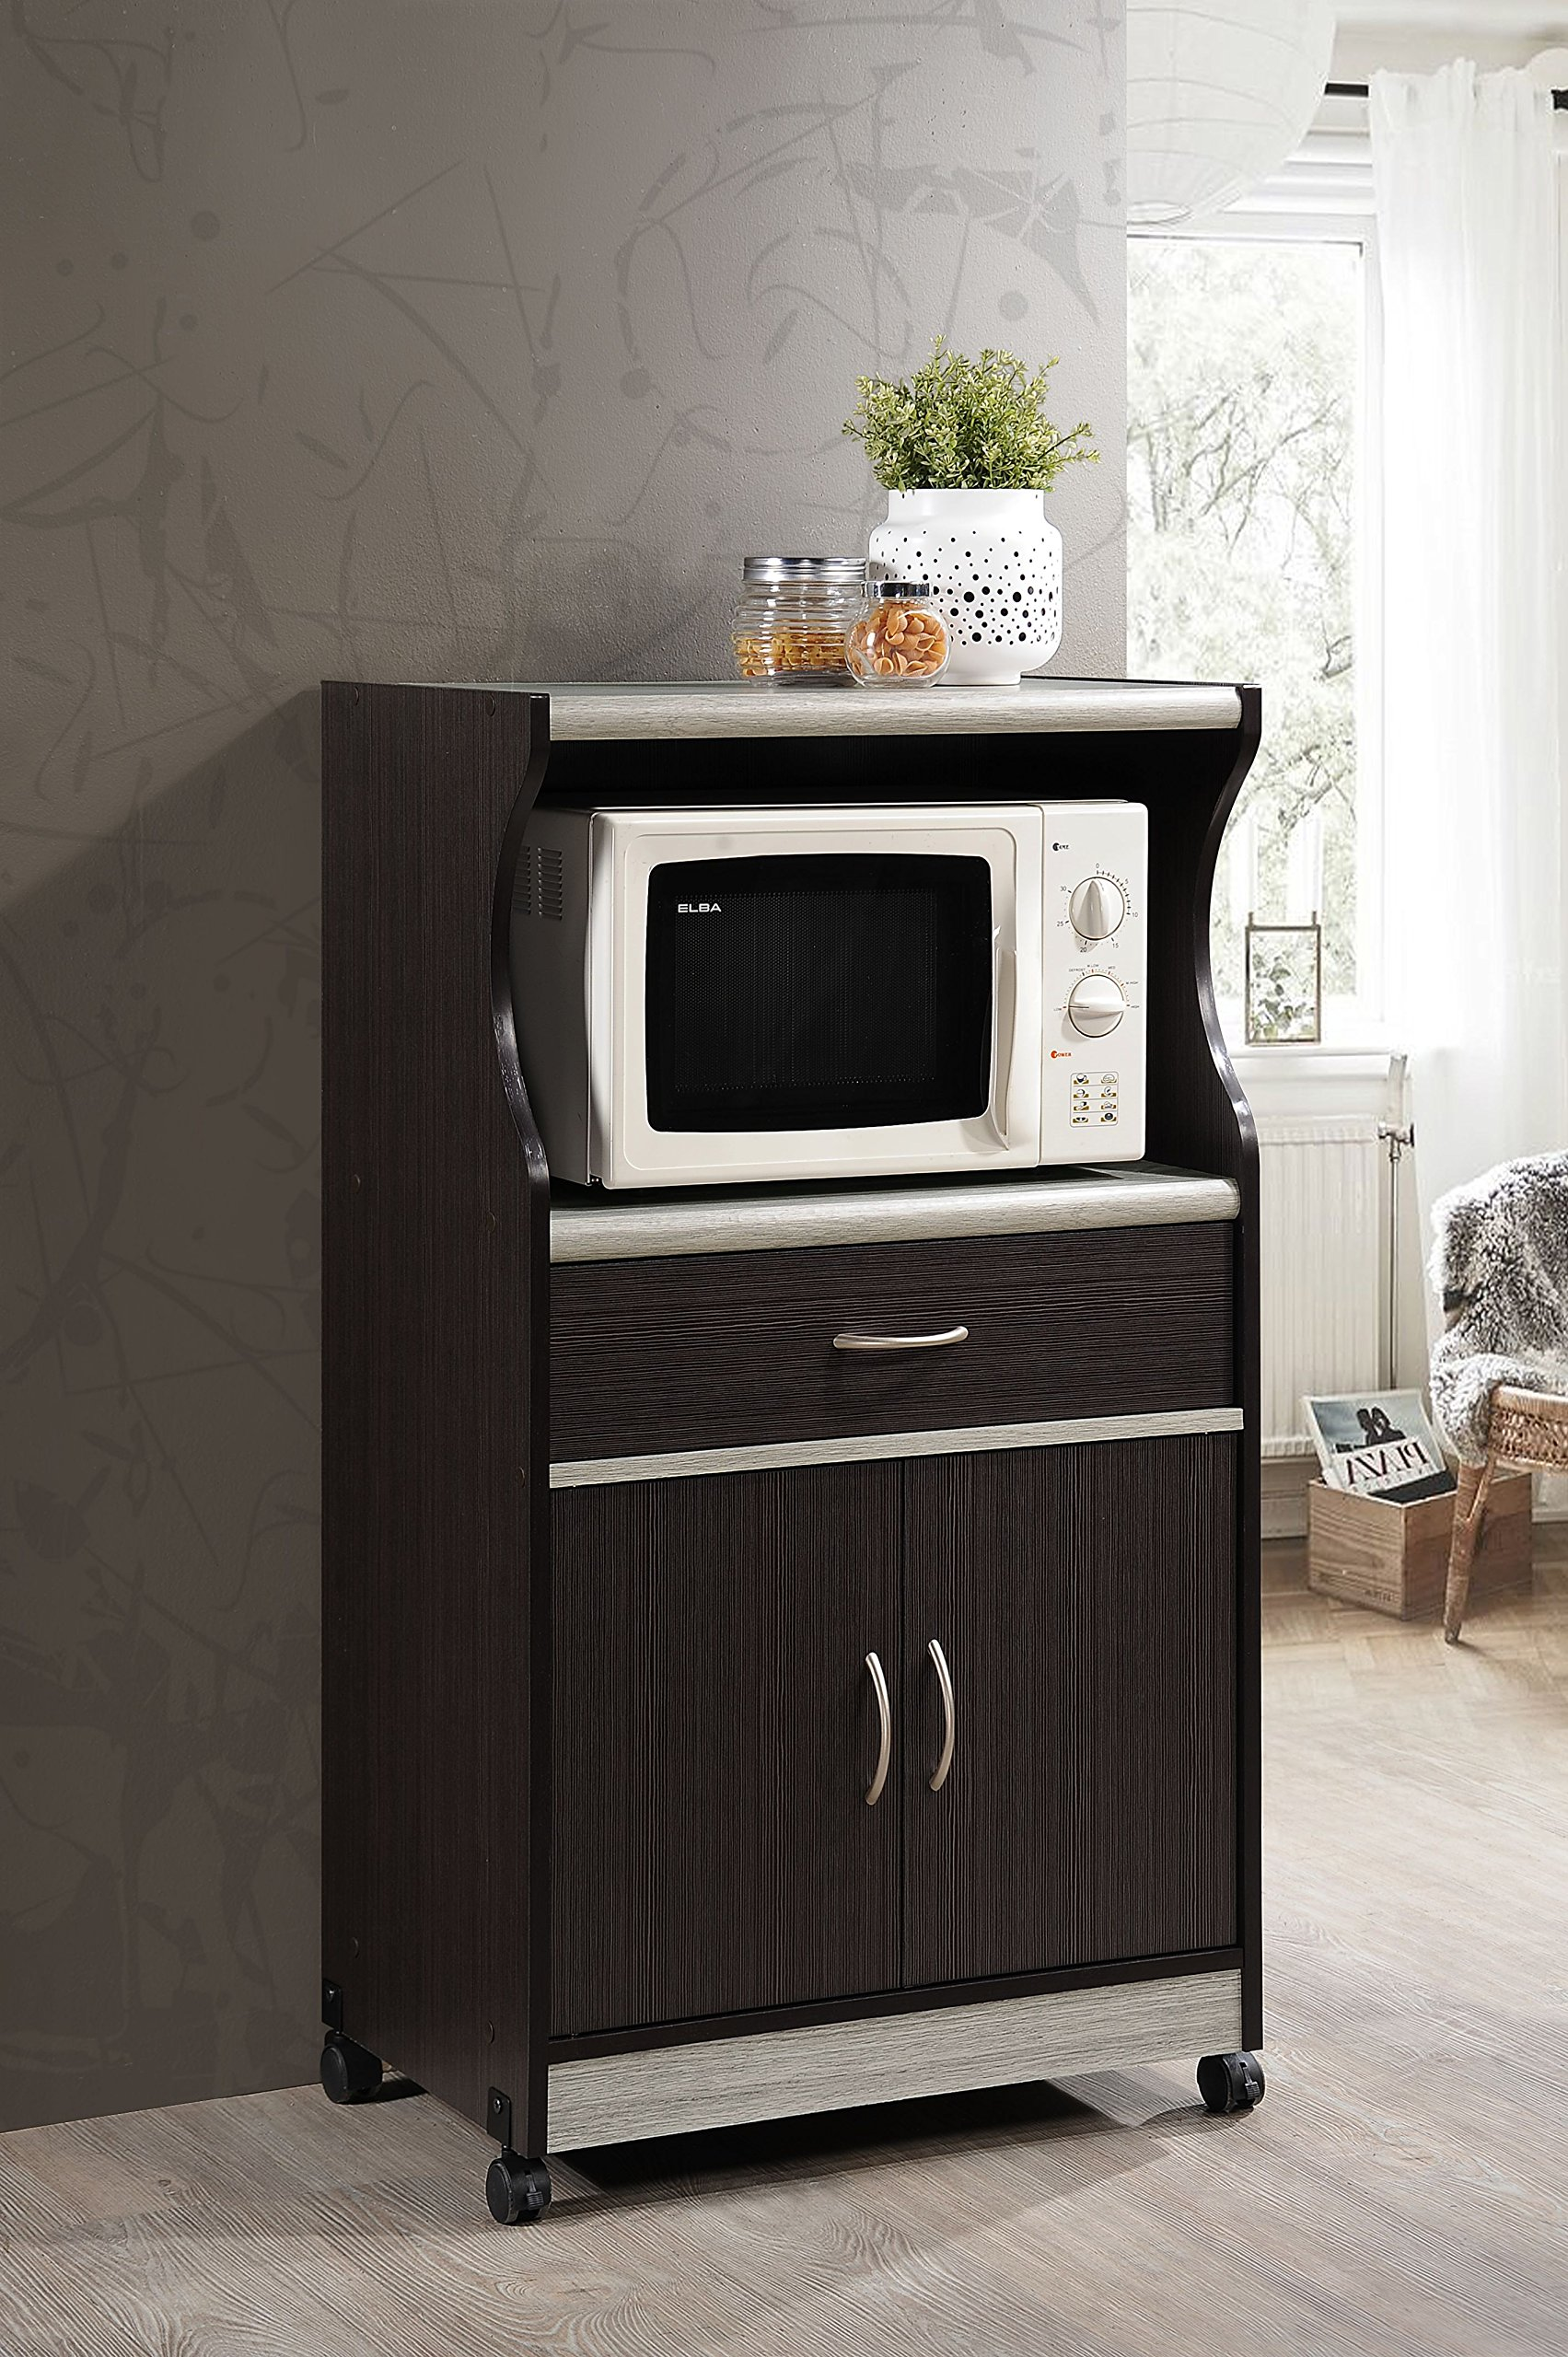 Hodedah Microwave Cart with One Drawer, Two Doors, and Shelf for Storage, Chocolate by HODEDAH IMPORT (Image #2)